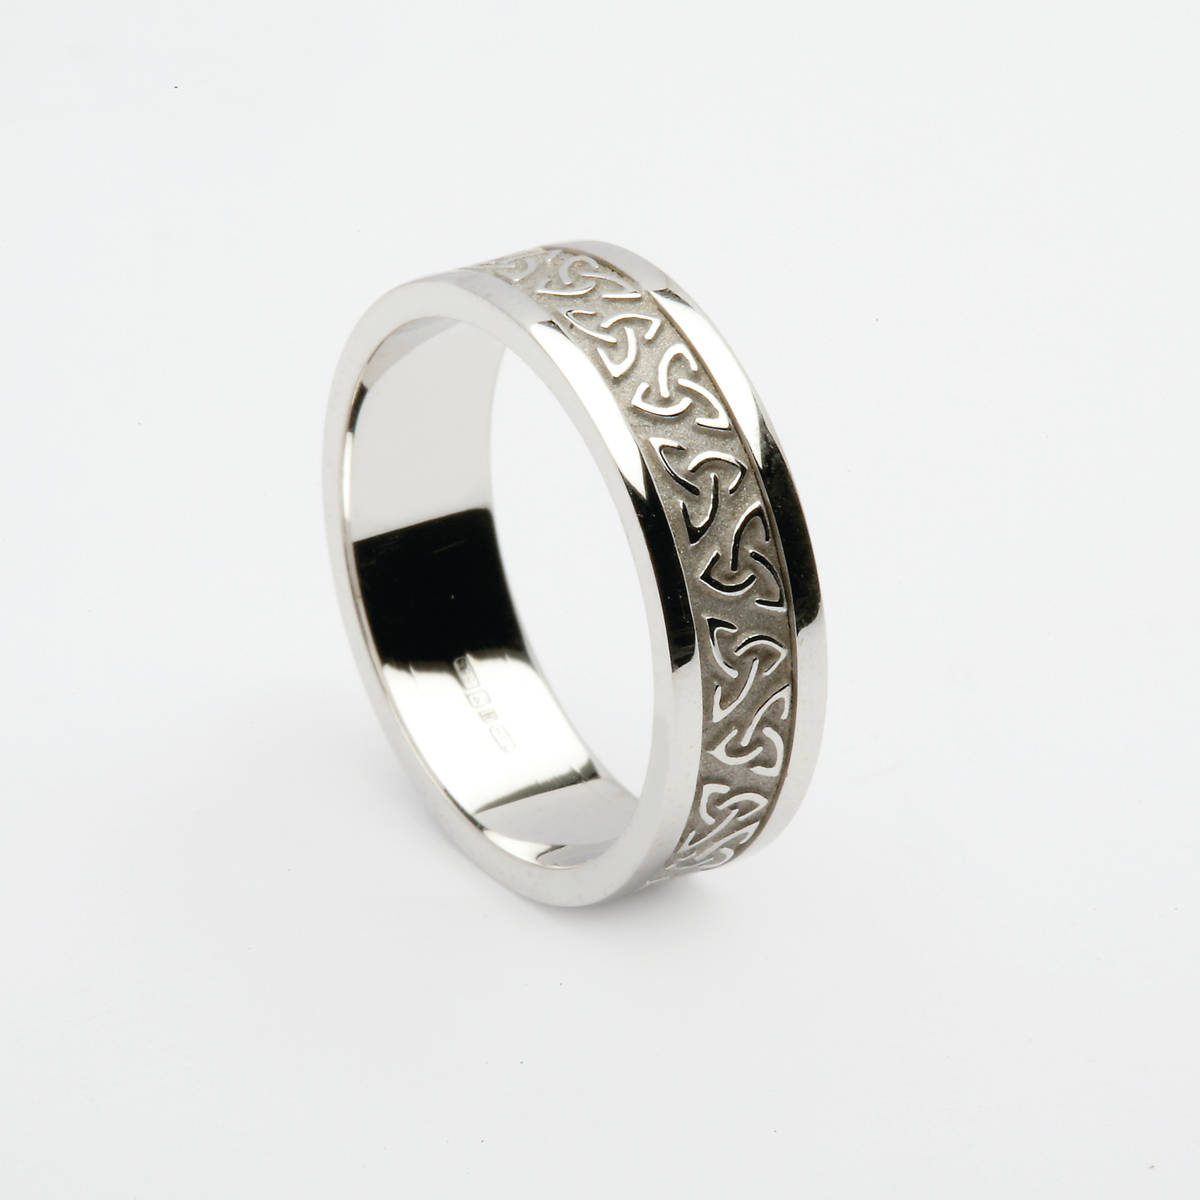 14 carat white gold man's raised repeating Celtic eternity knotring.Very comfortable and unique